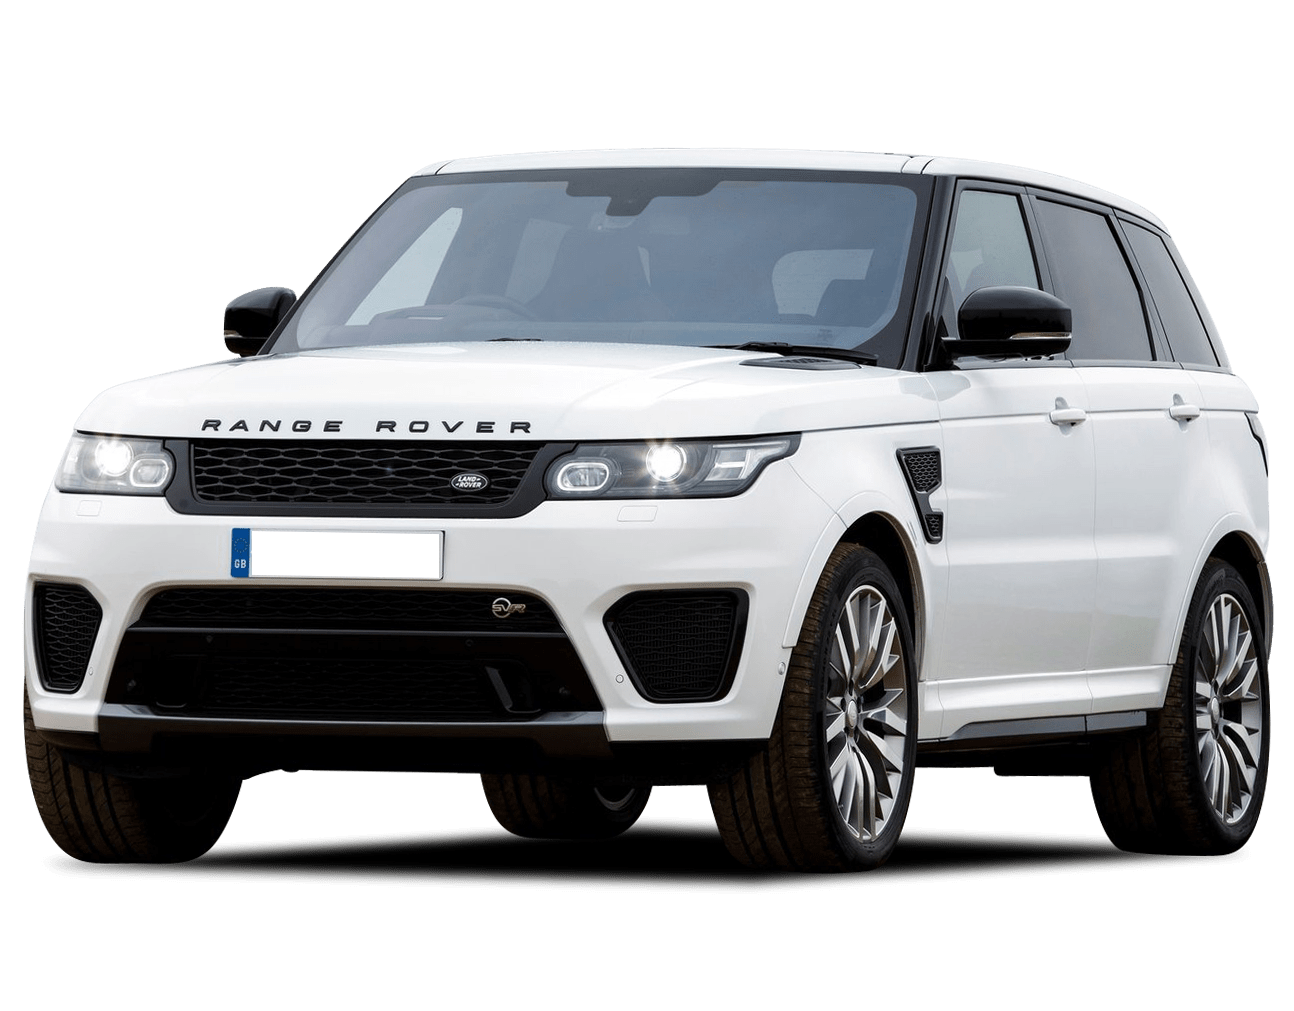 Land rover PNG Images.